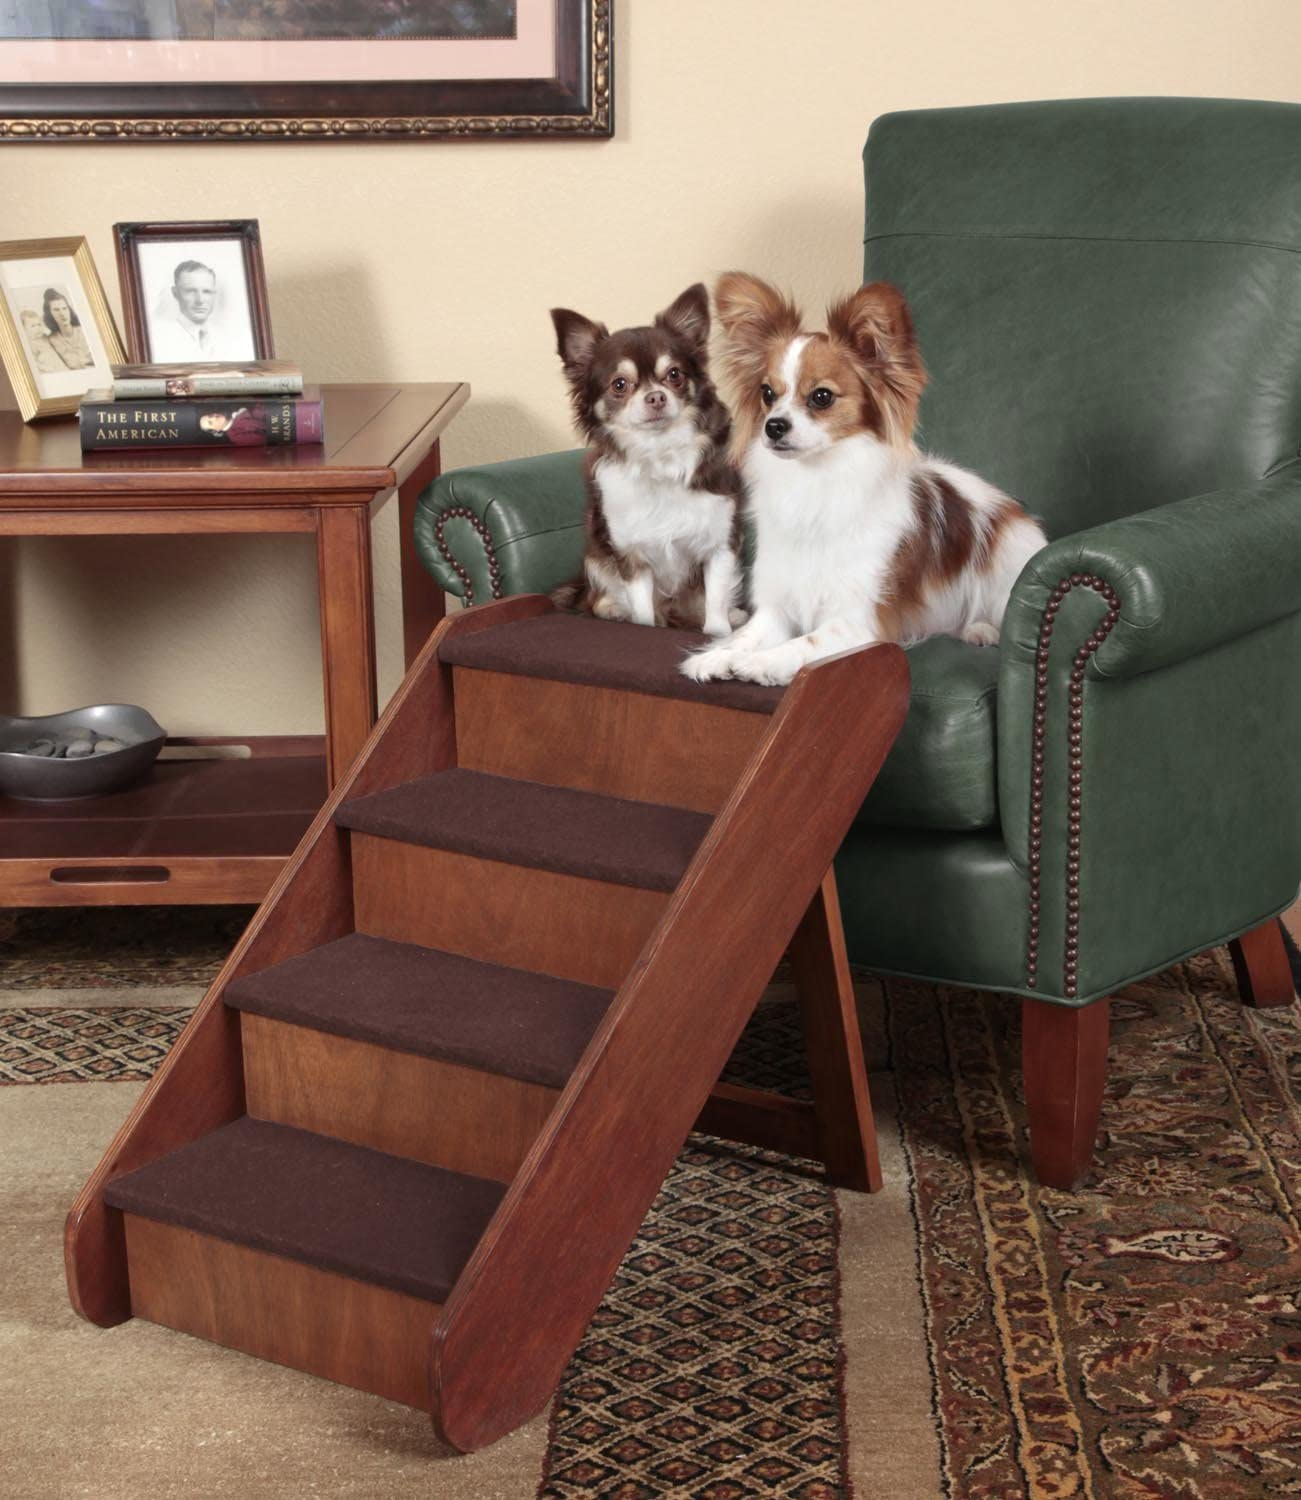 Side Rails and Non-Slip Feet Provide Added Security PetSafe CozyUp Folding Wood Pet Steps 25 inches PupSTEP Dog and Cat Stairs Lightweight Durable Wooden Frame Supports up to 200 lb